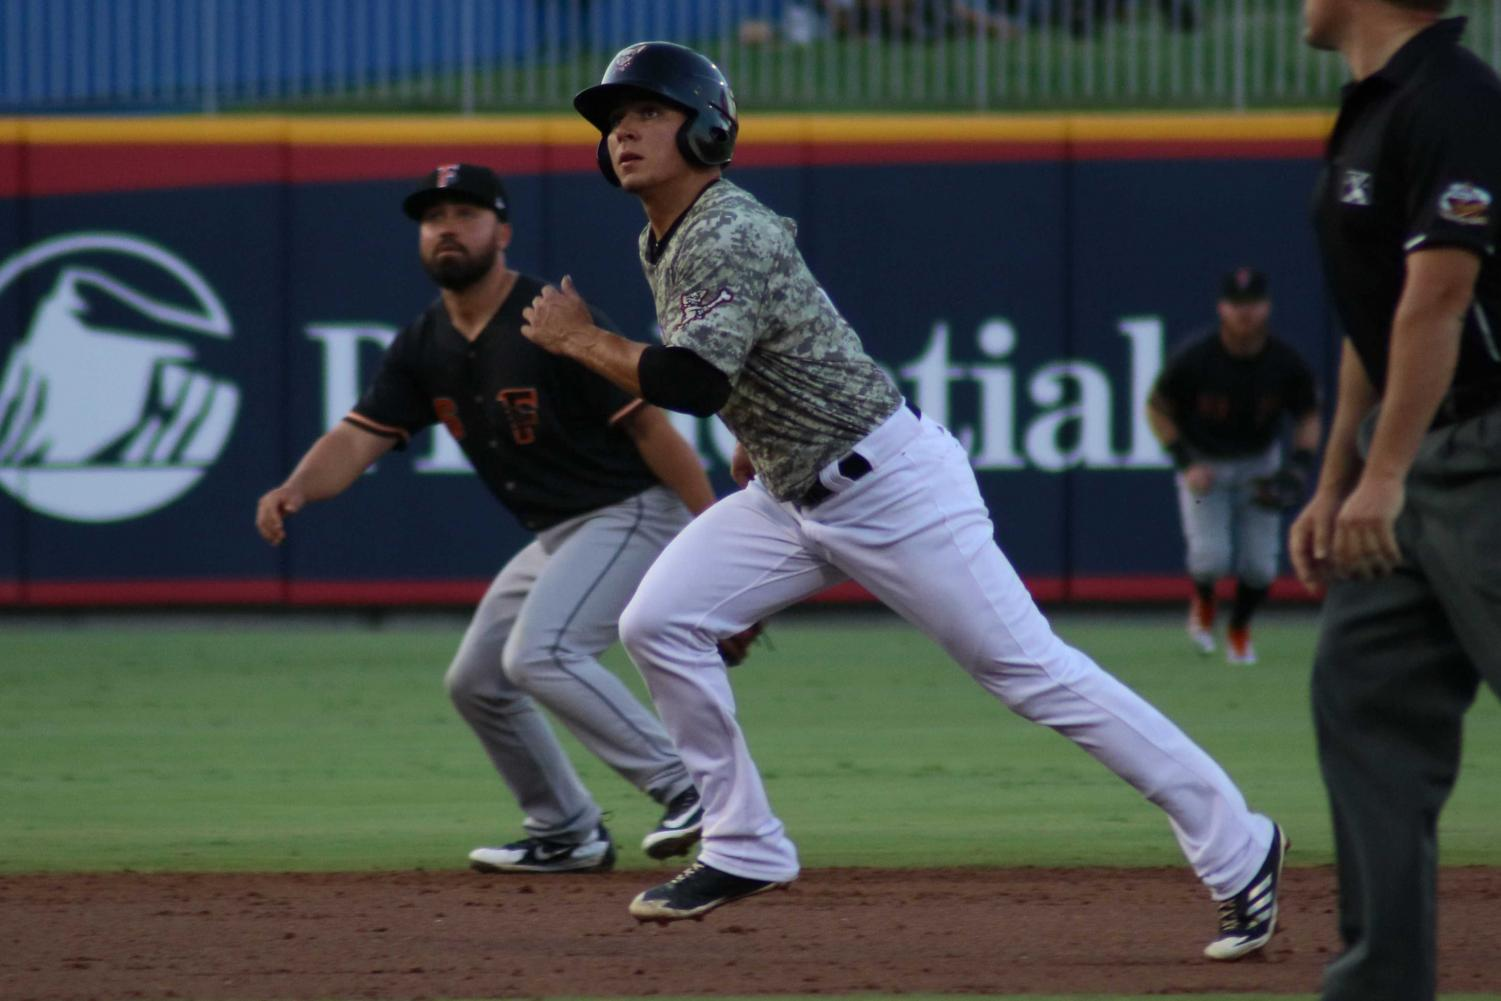 The Chihuahuas currently have the PCL's best record